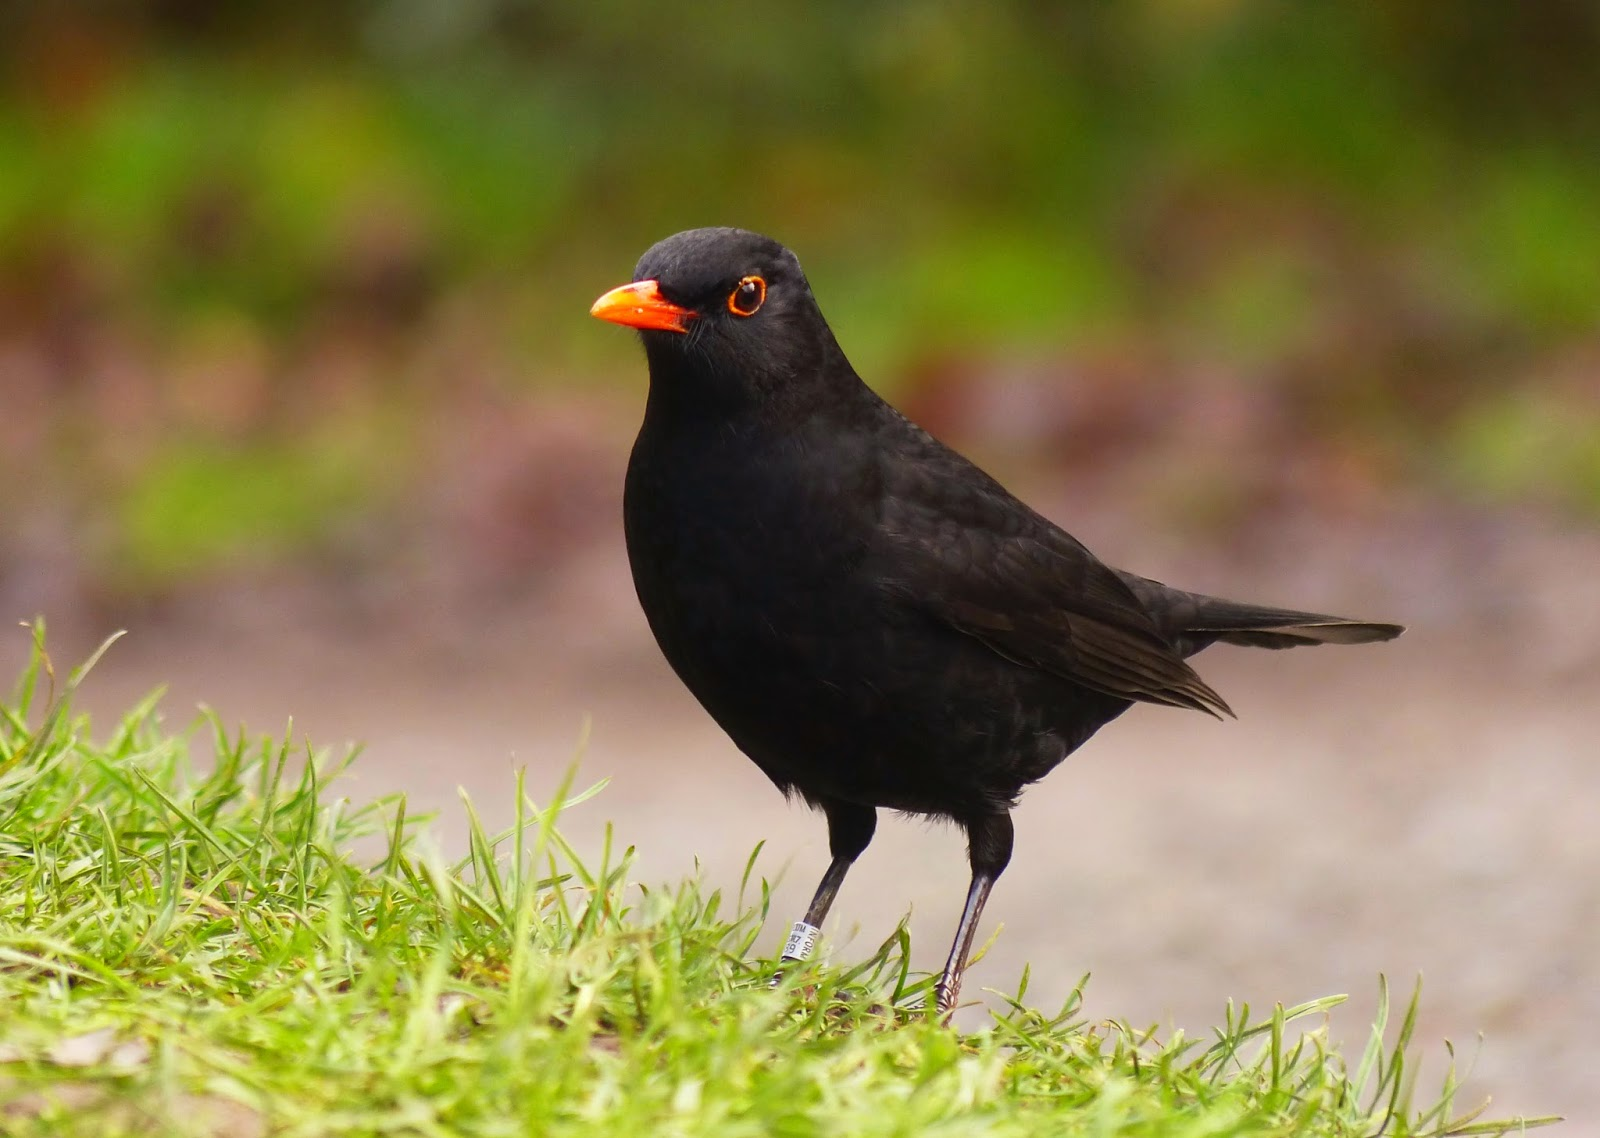 Ringed Blackbird